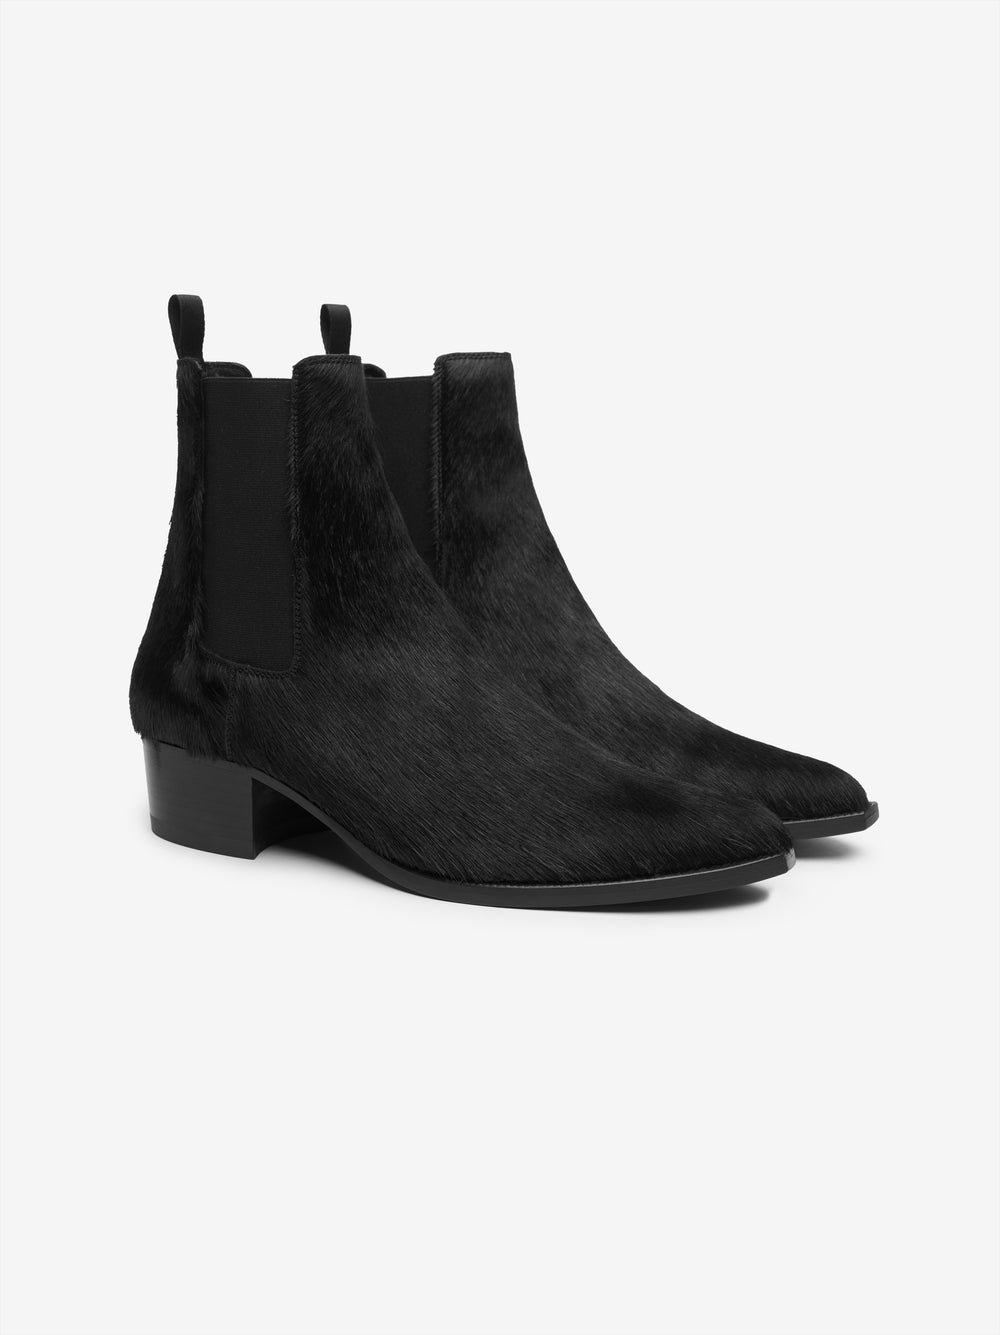 CHELSEA LEATHER SOLE BOOT - BLACK / BLACK